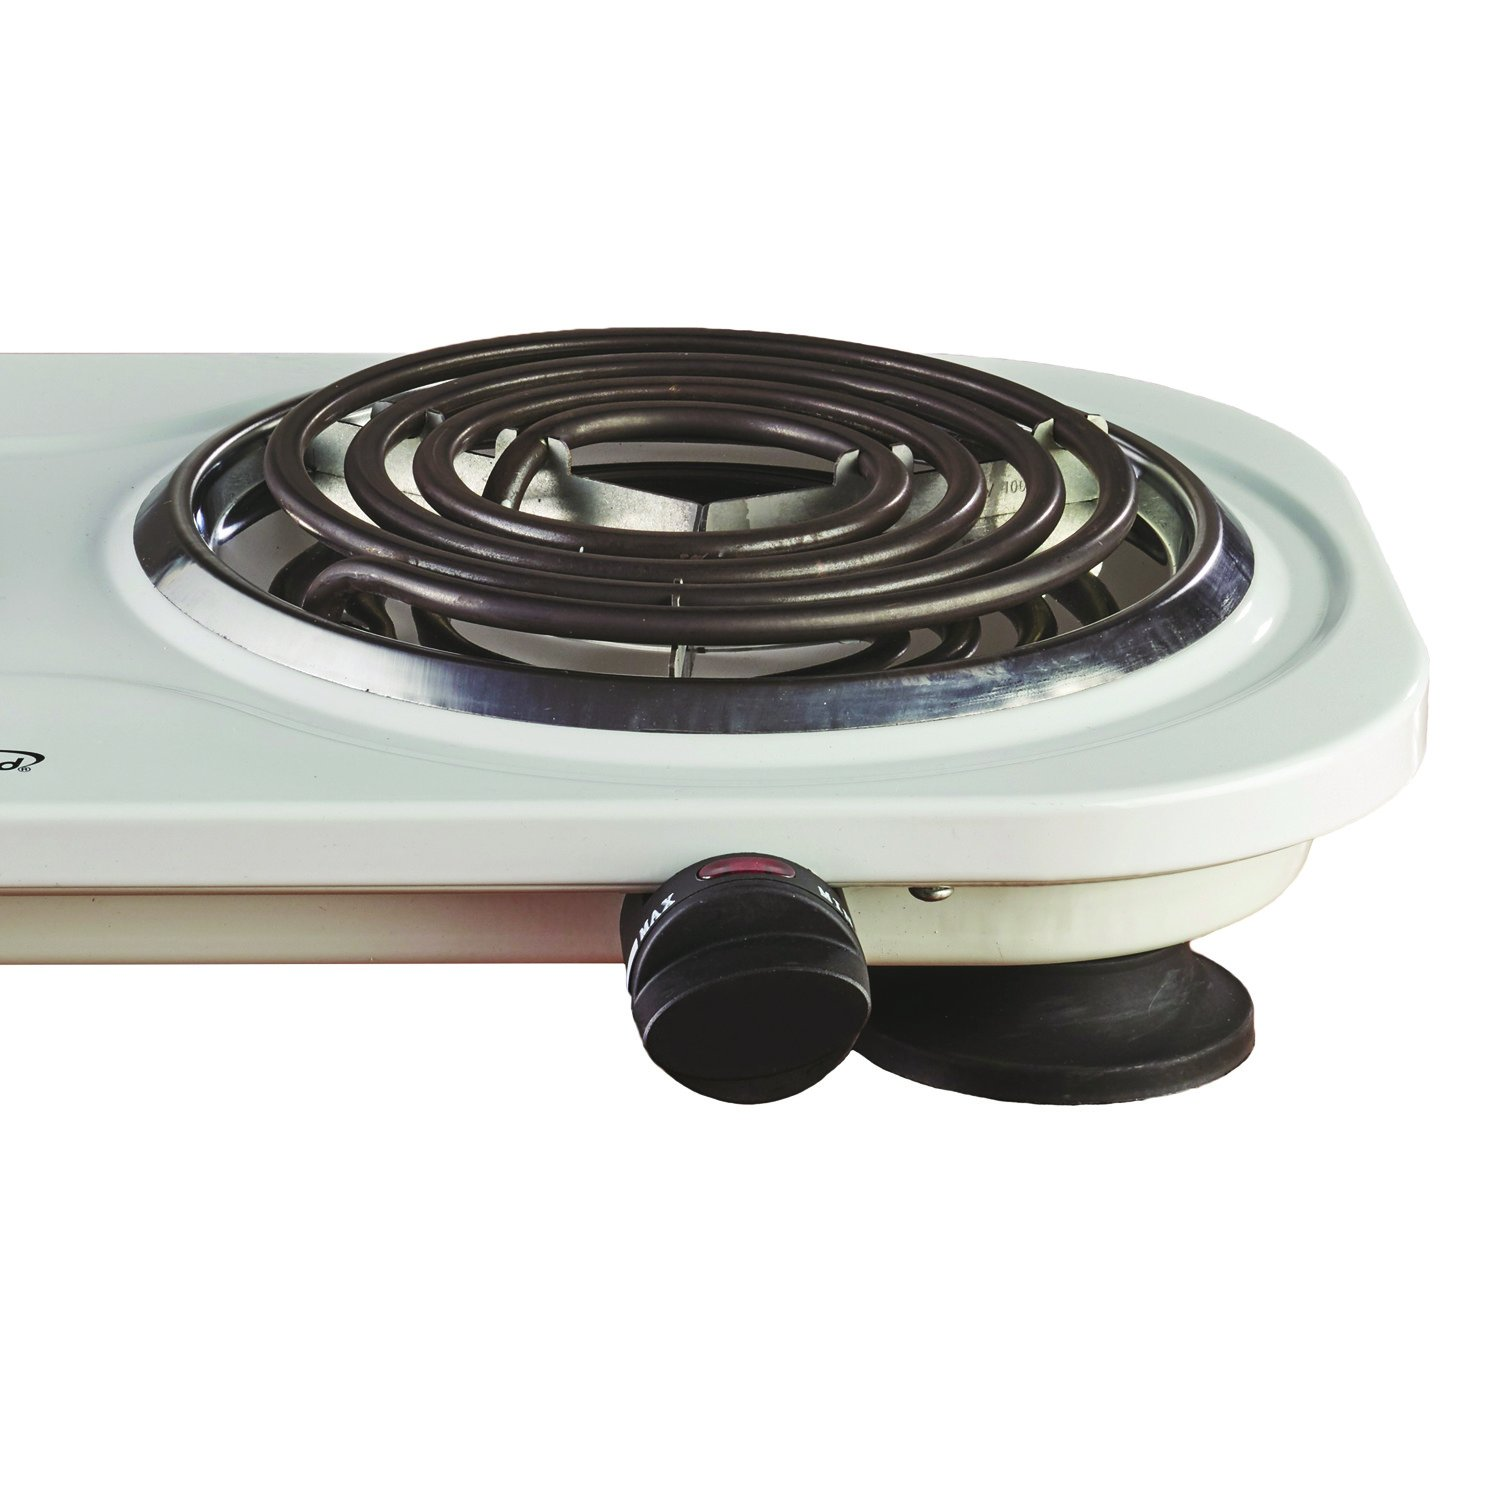 Brentwood TS-321W 1000w Single Electric Burner, White by Brentwood (Image #5)